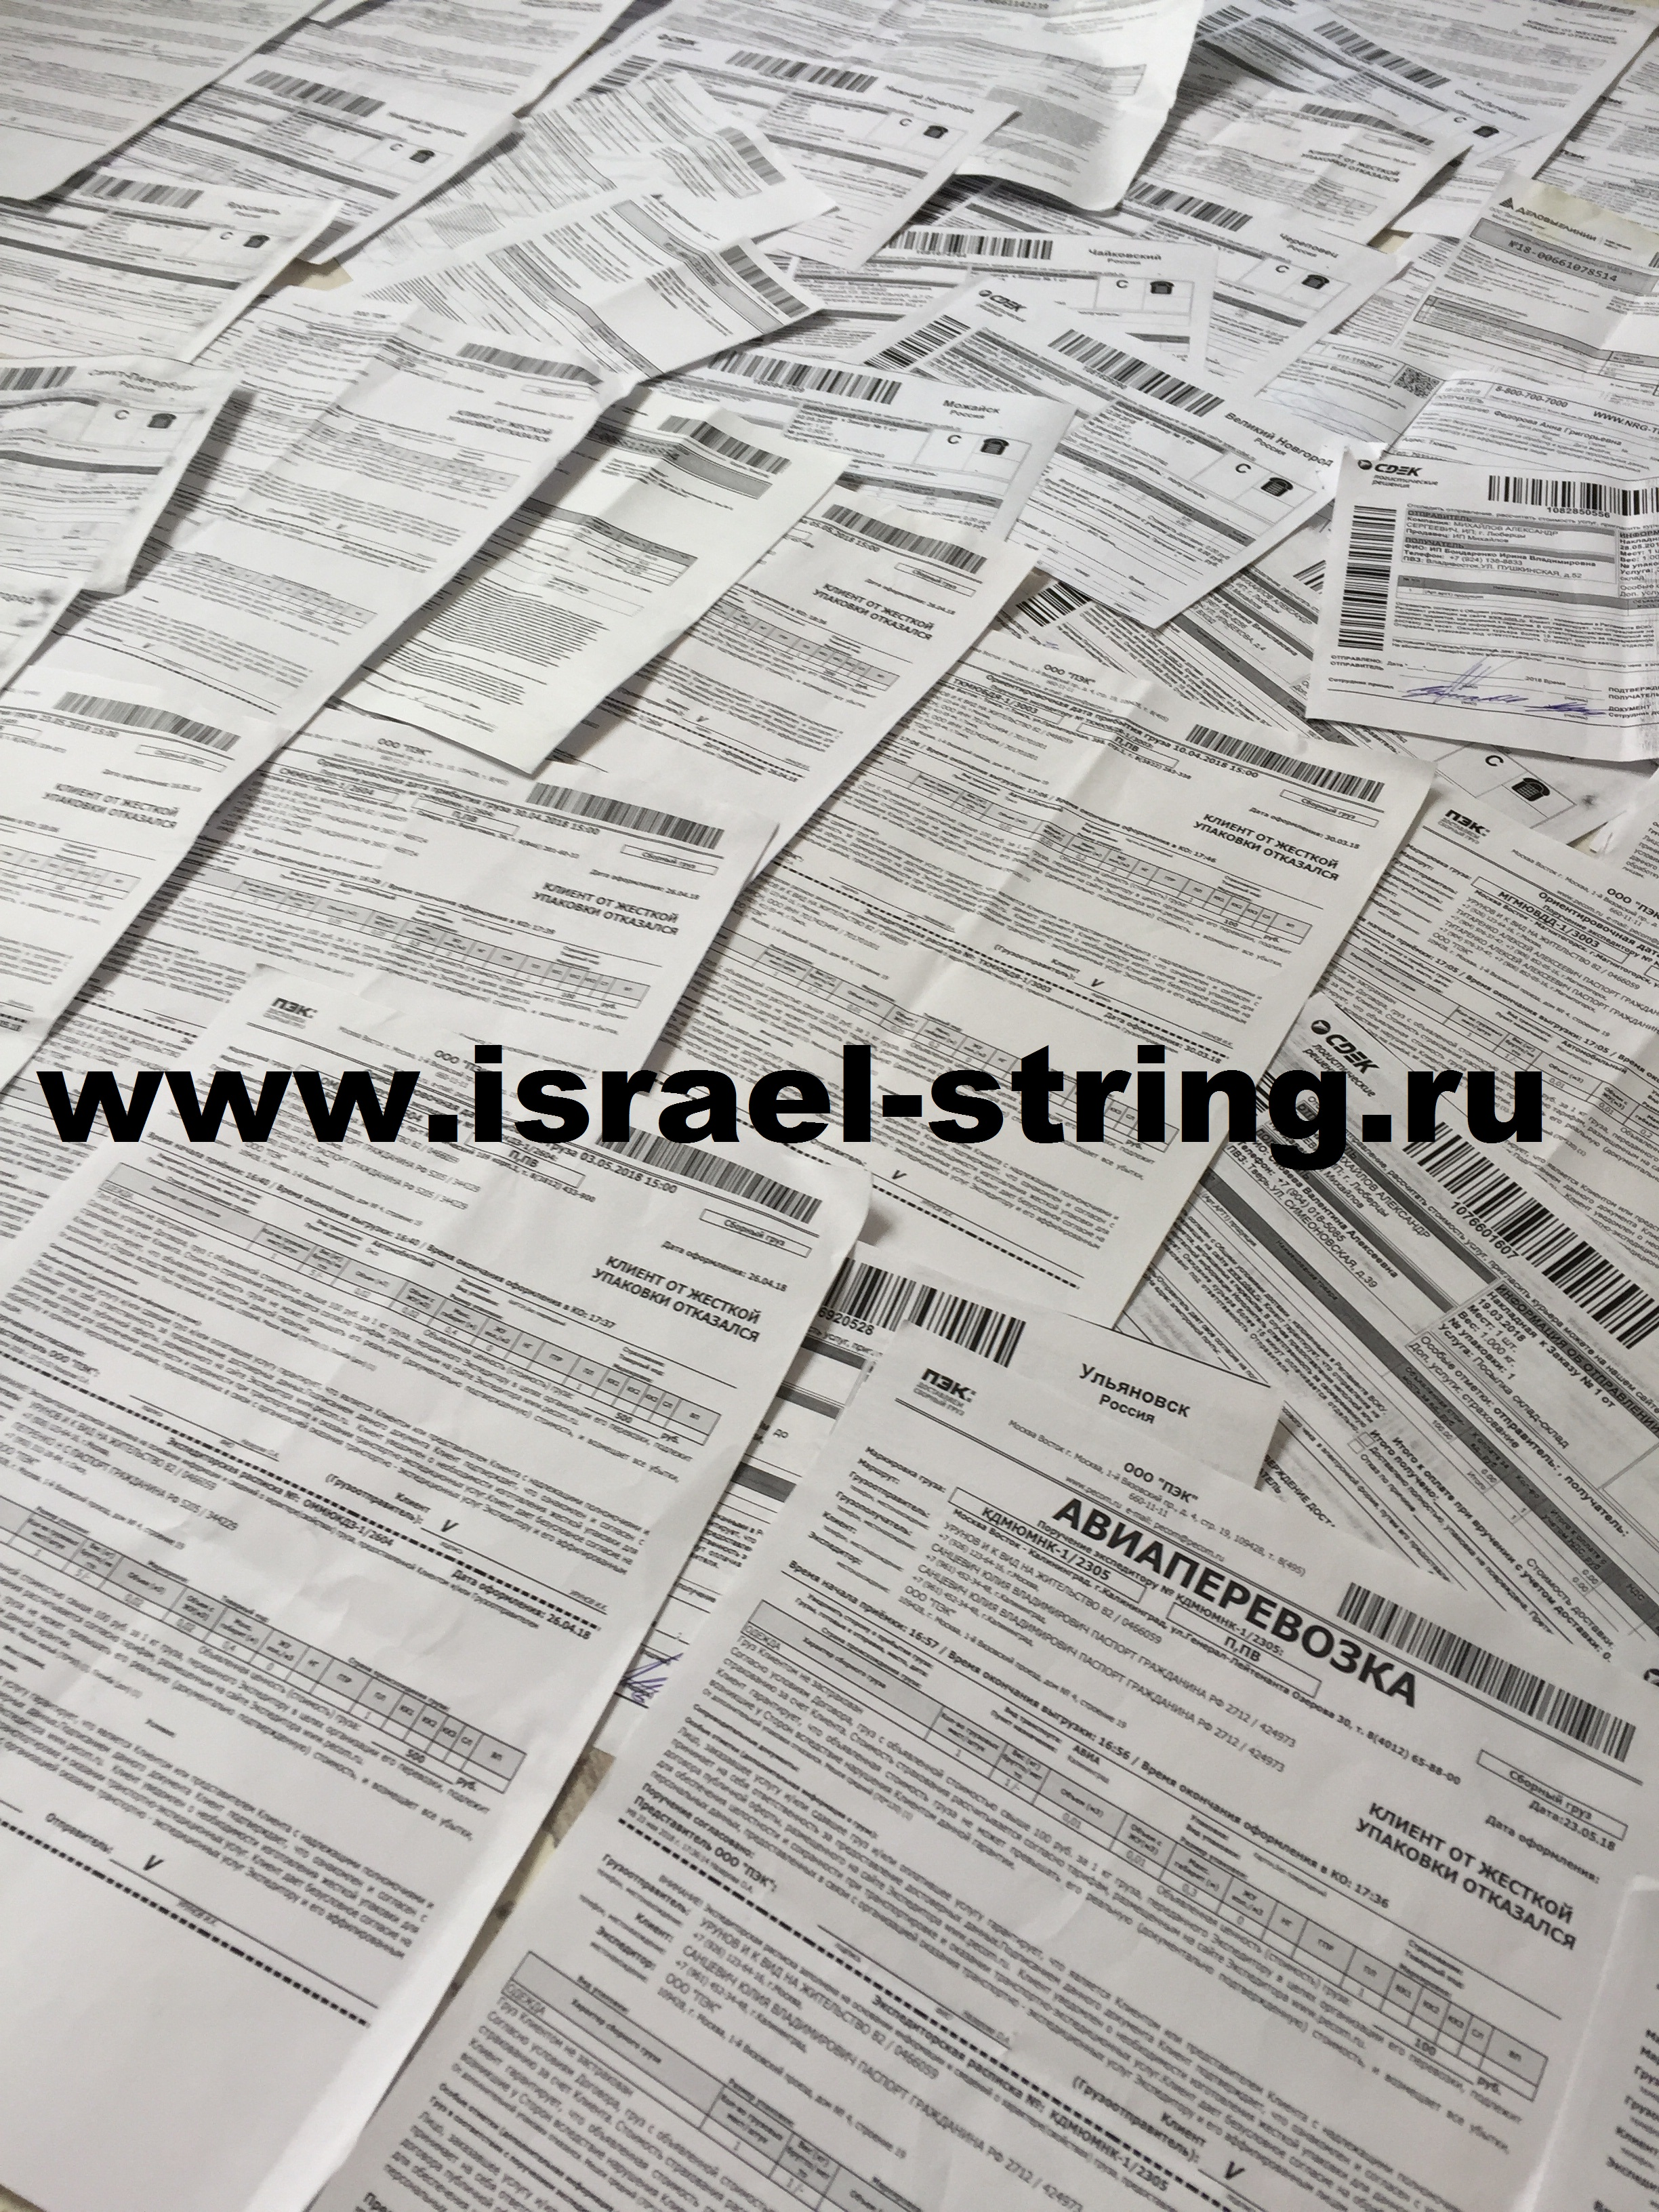 http://israel-string.ru/images/upload/IMG_45441.jpg